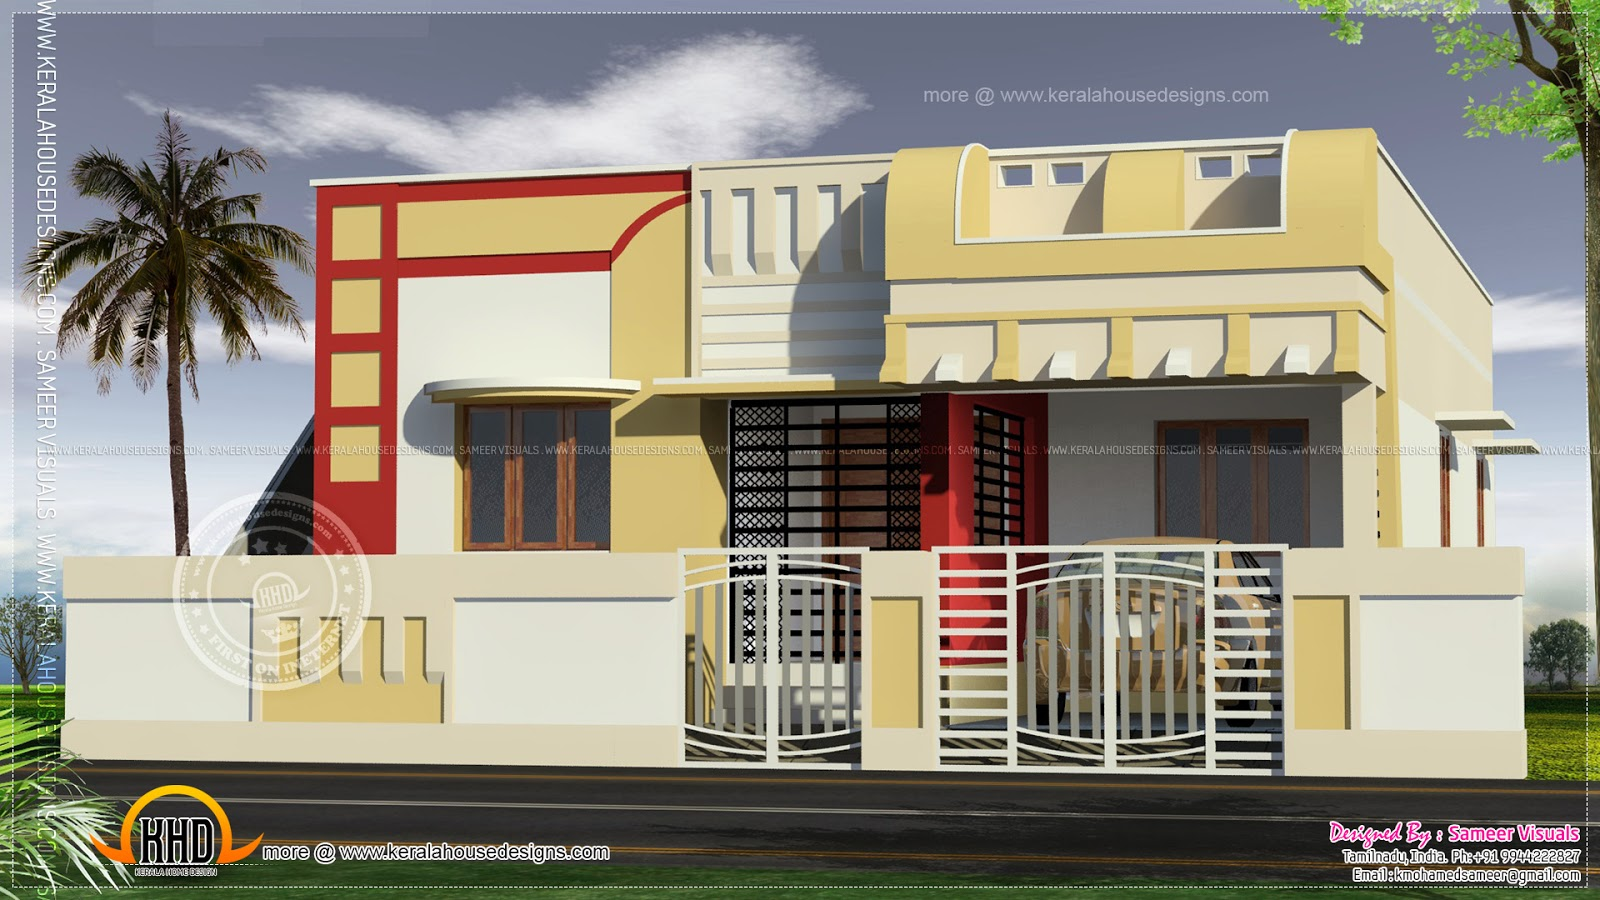 Small south indian home design kerala home design and for South indian small house designs